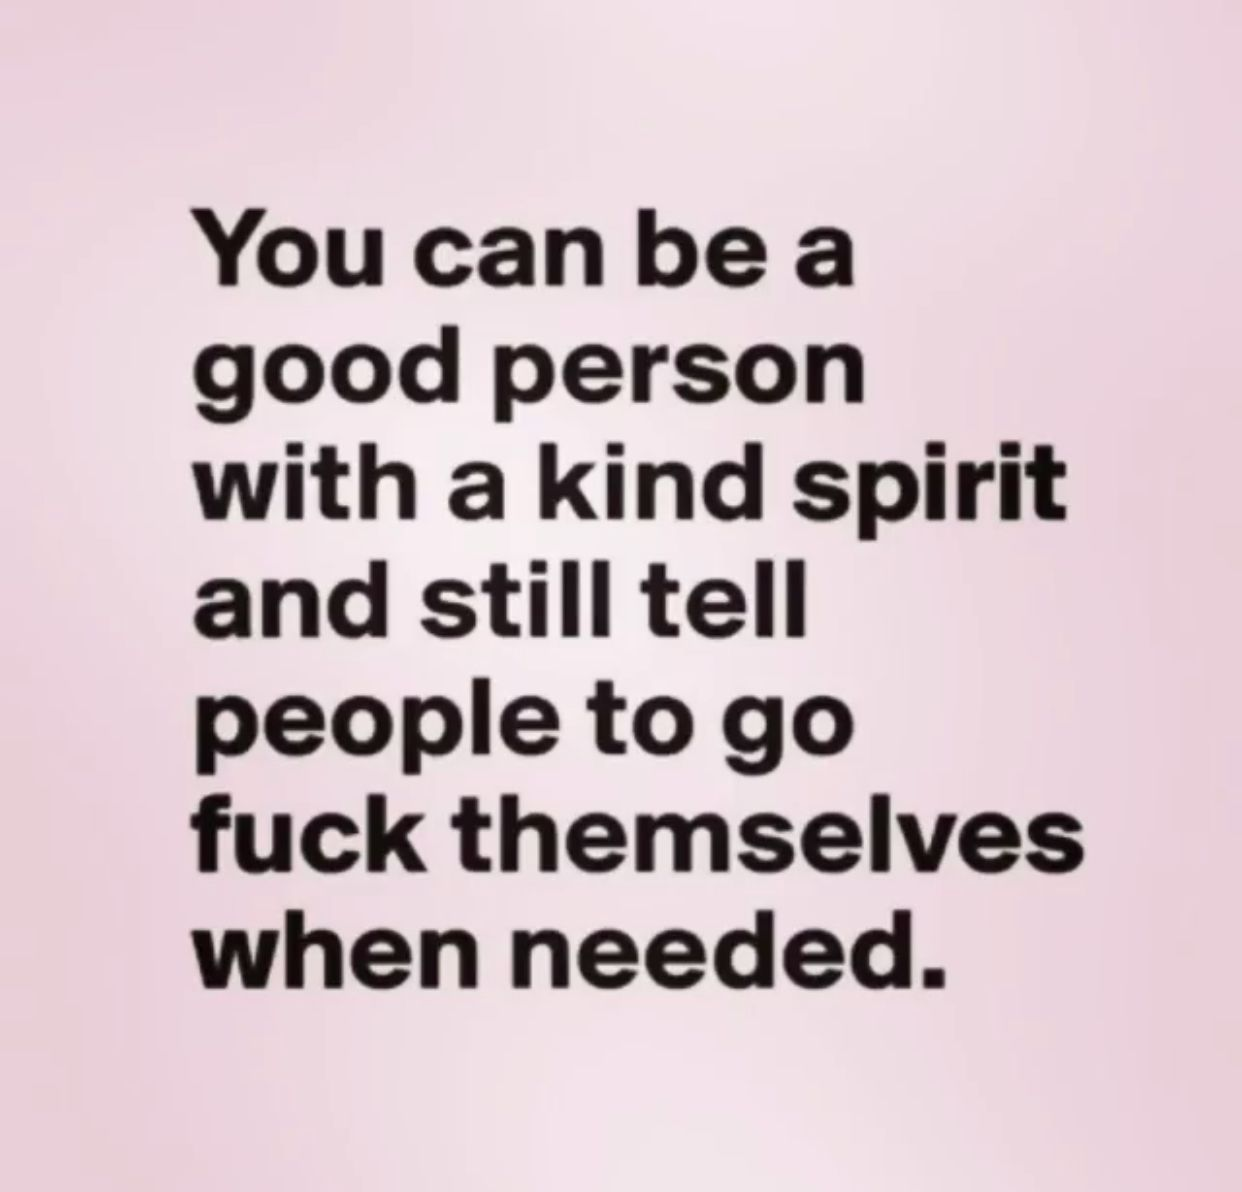 Good Person Quotes You Can Be A Good Person With A Kind Spirit And Still Tell People To .